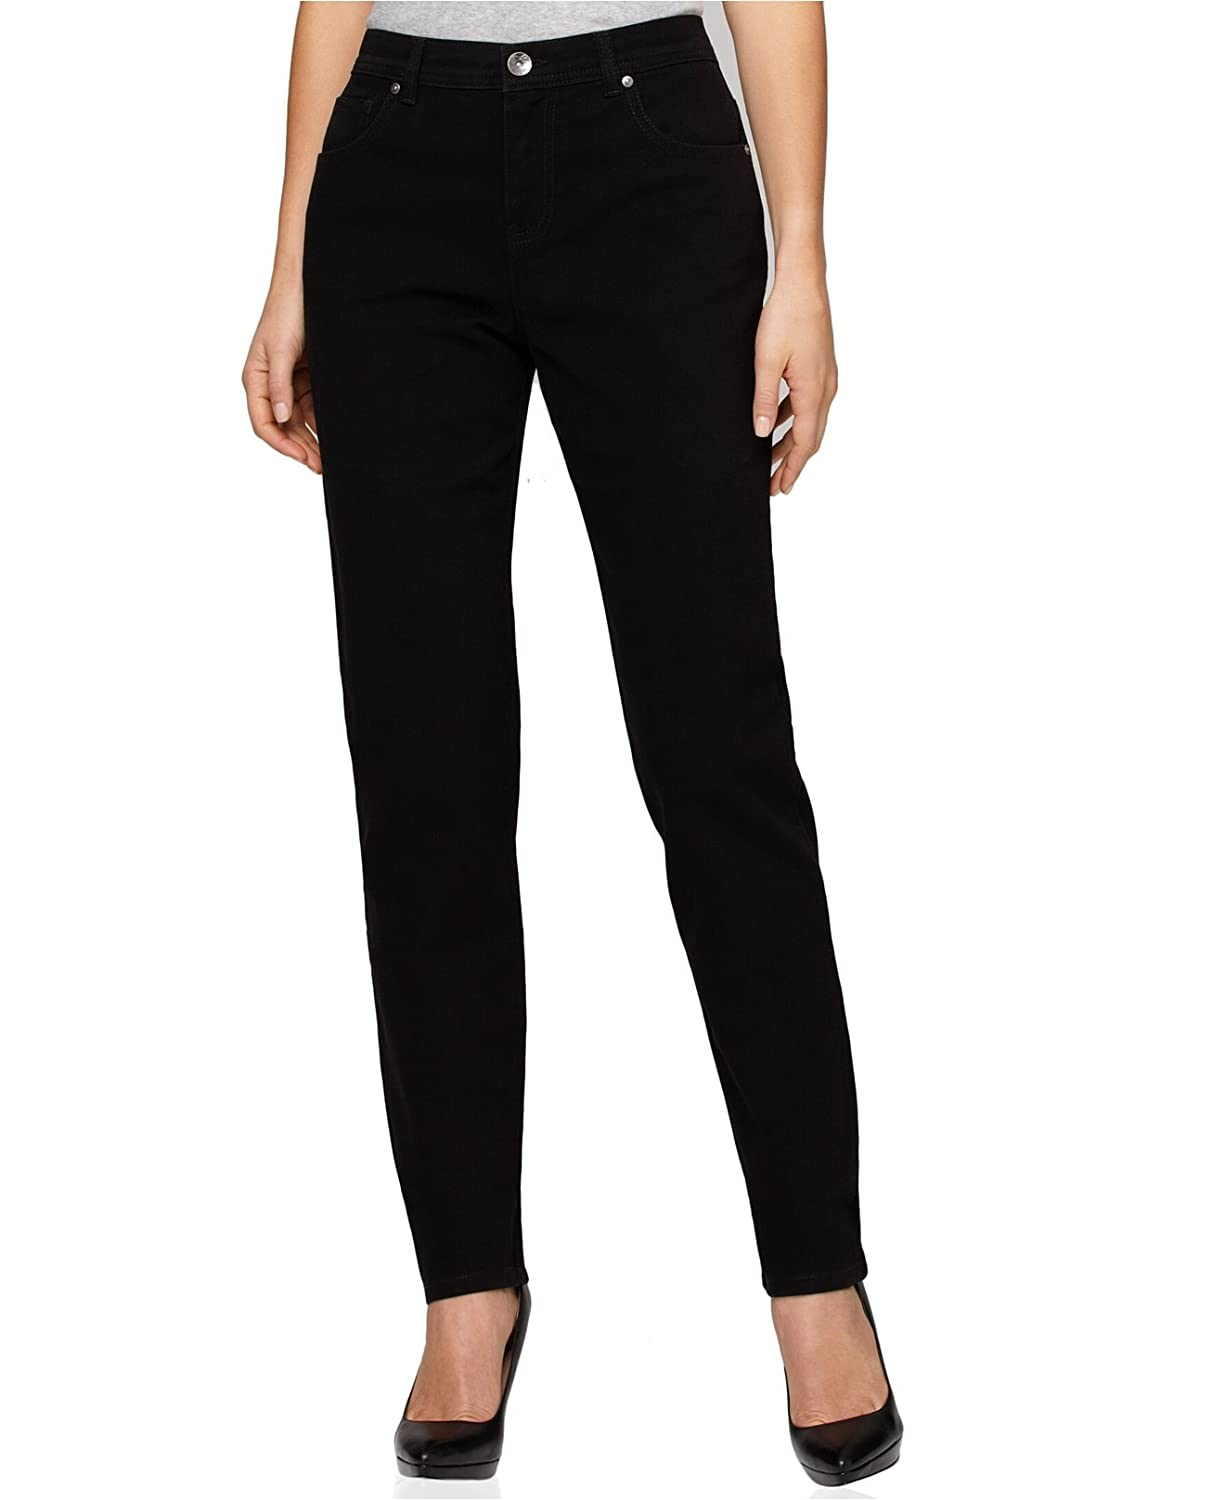 Style & Co Women's Tummy-control Tapered Natural Fit Pants